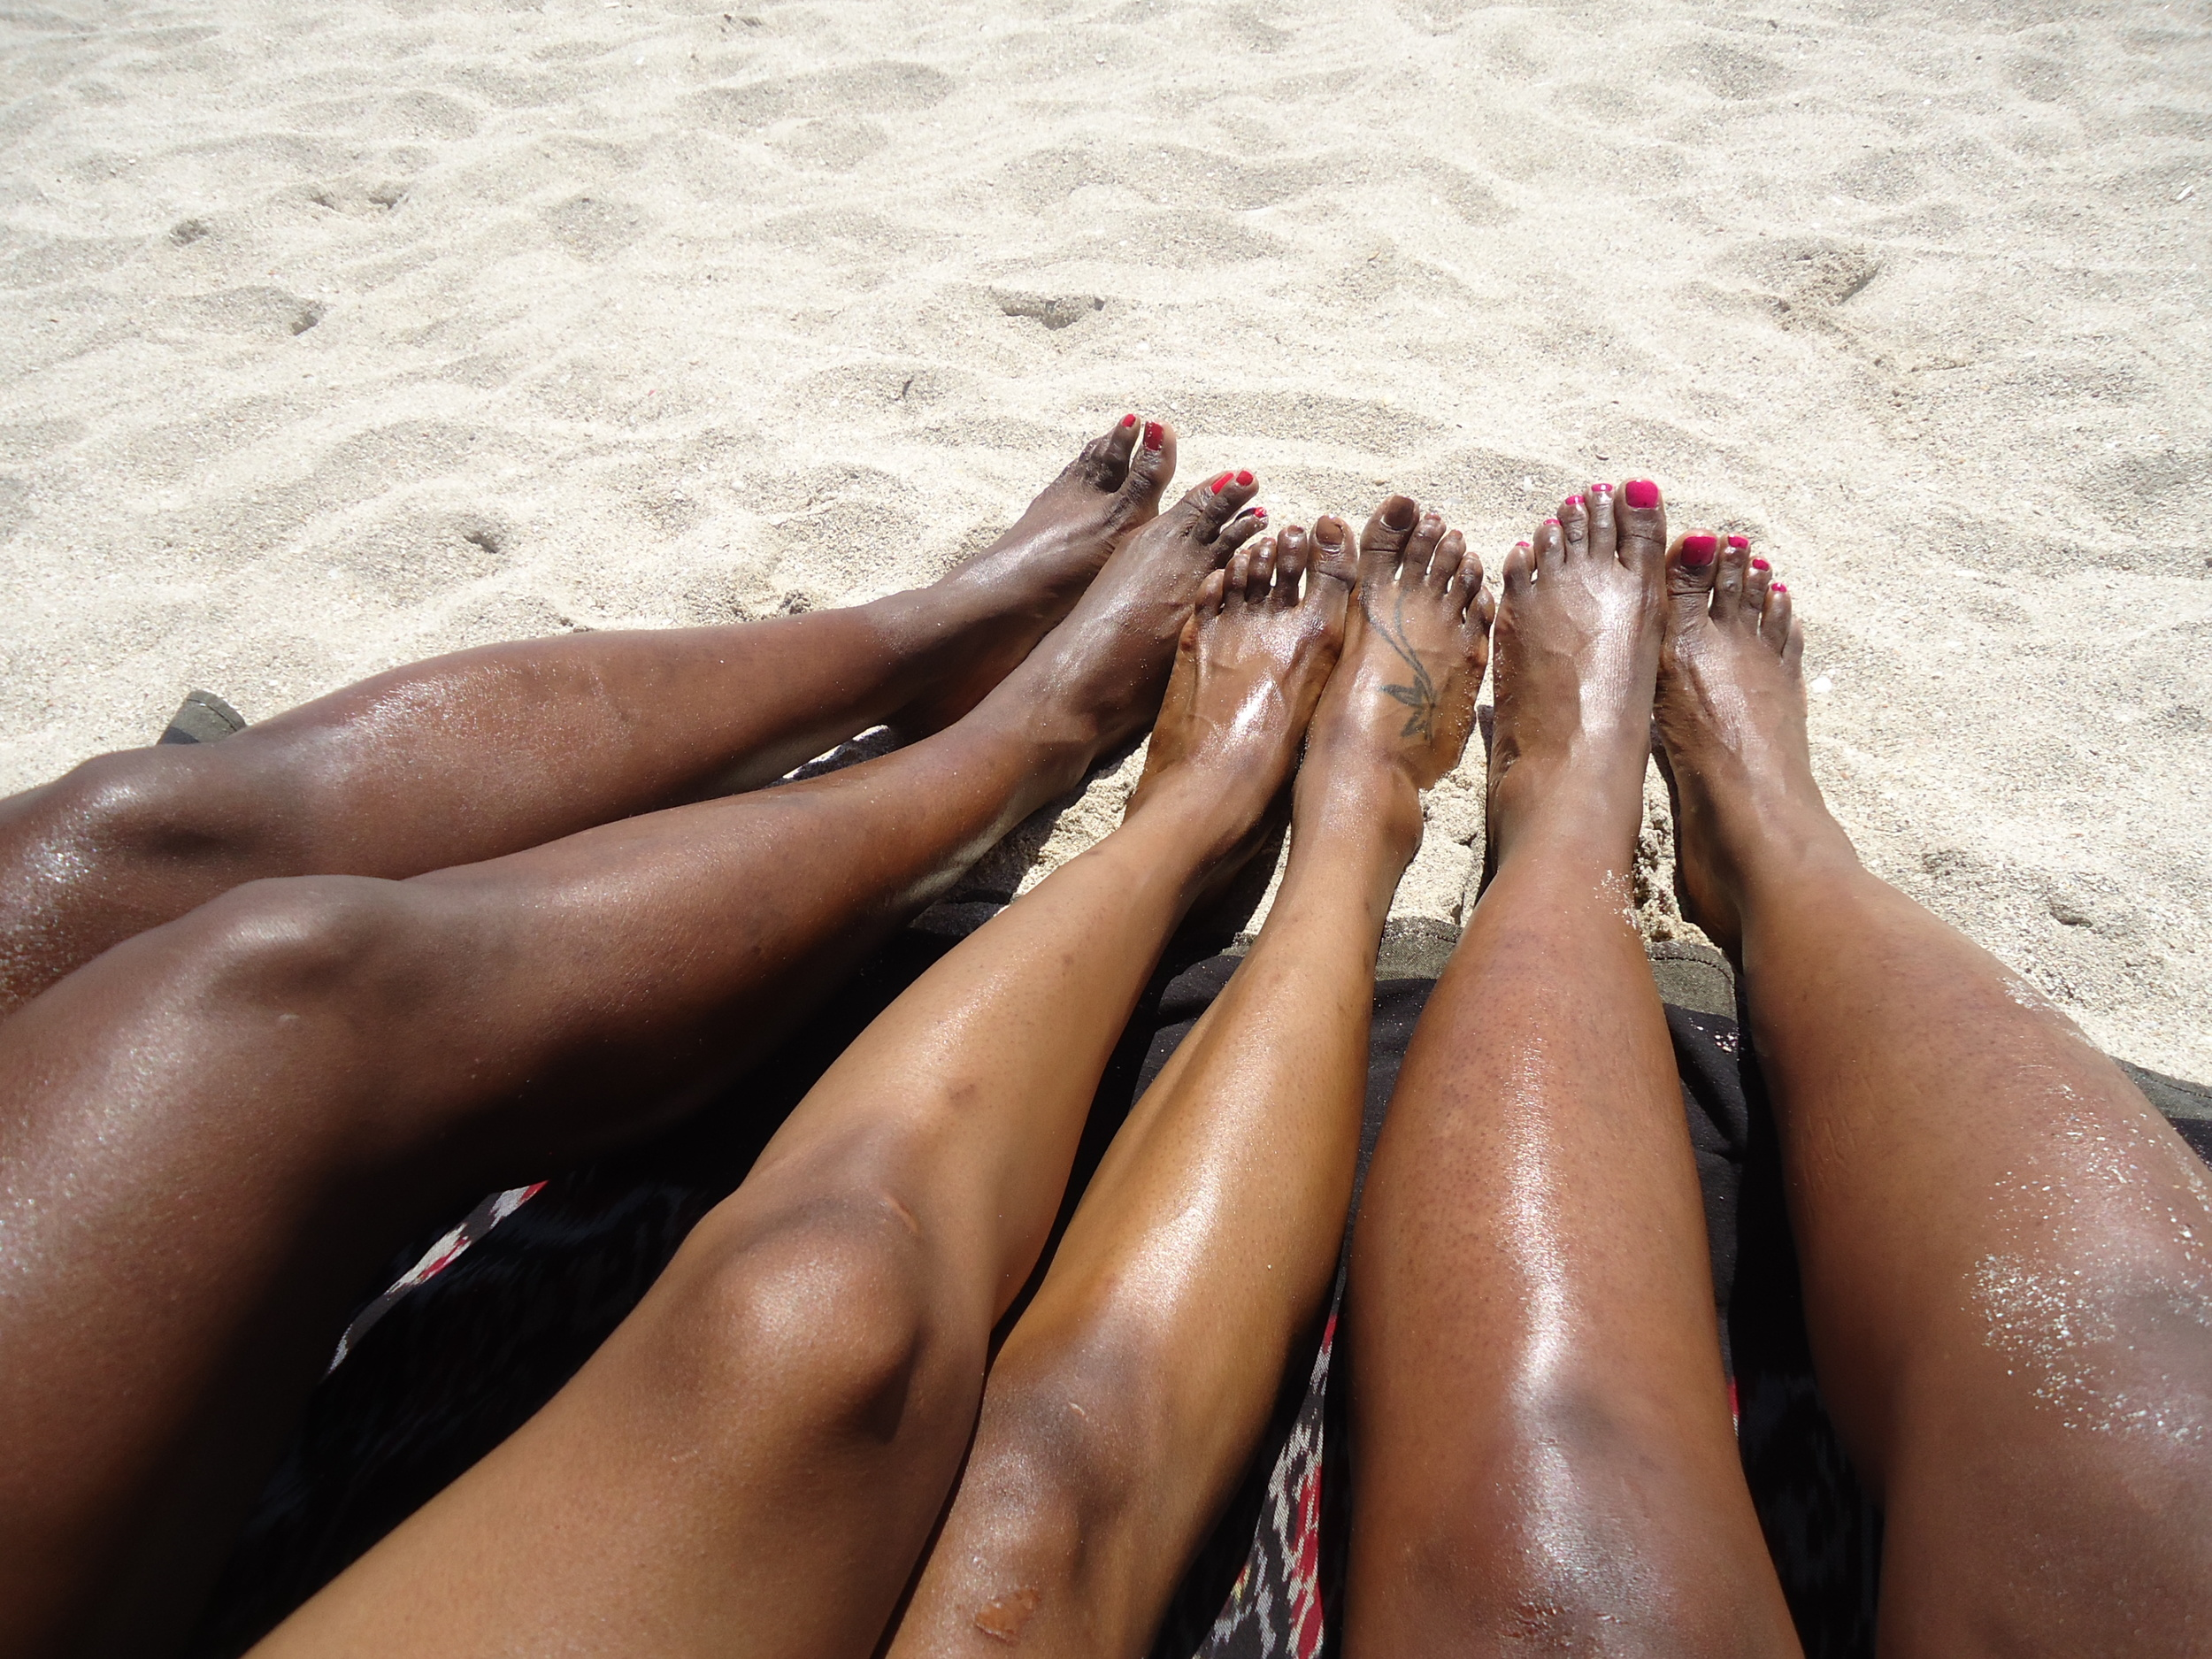 Different shades of skin.